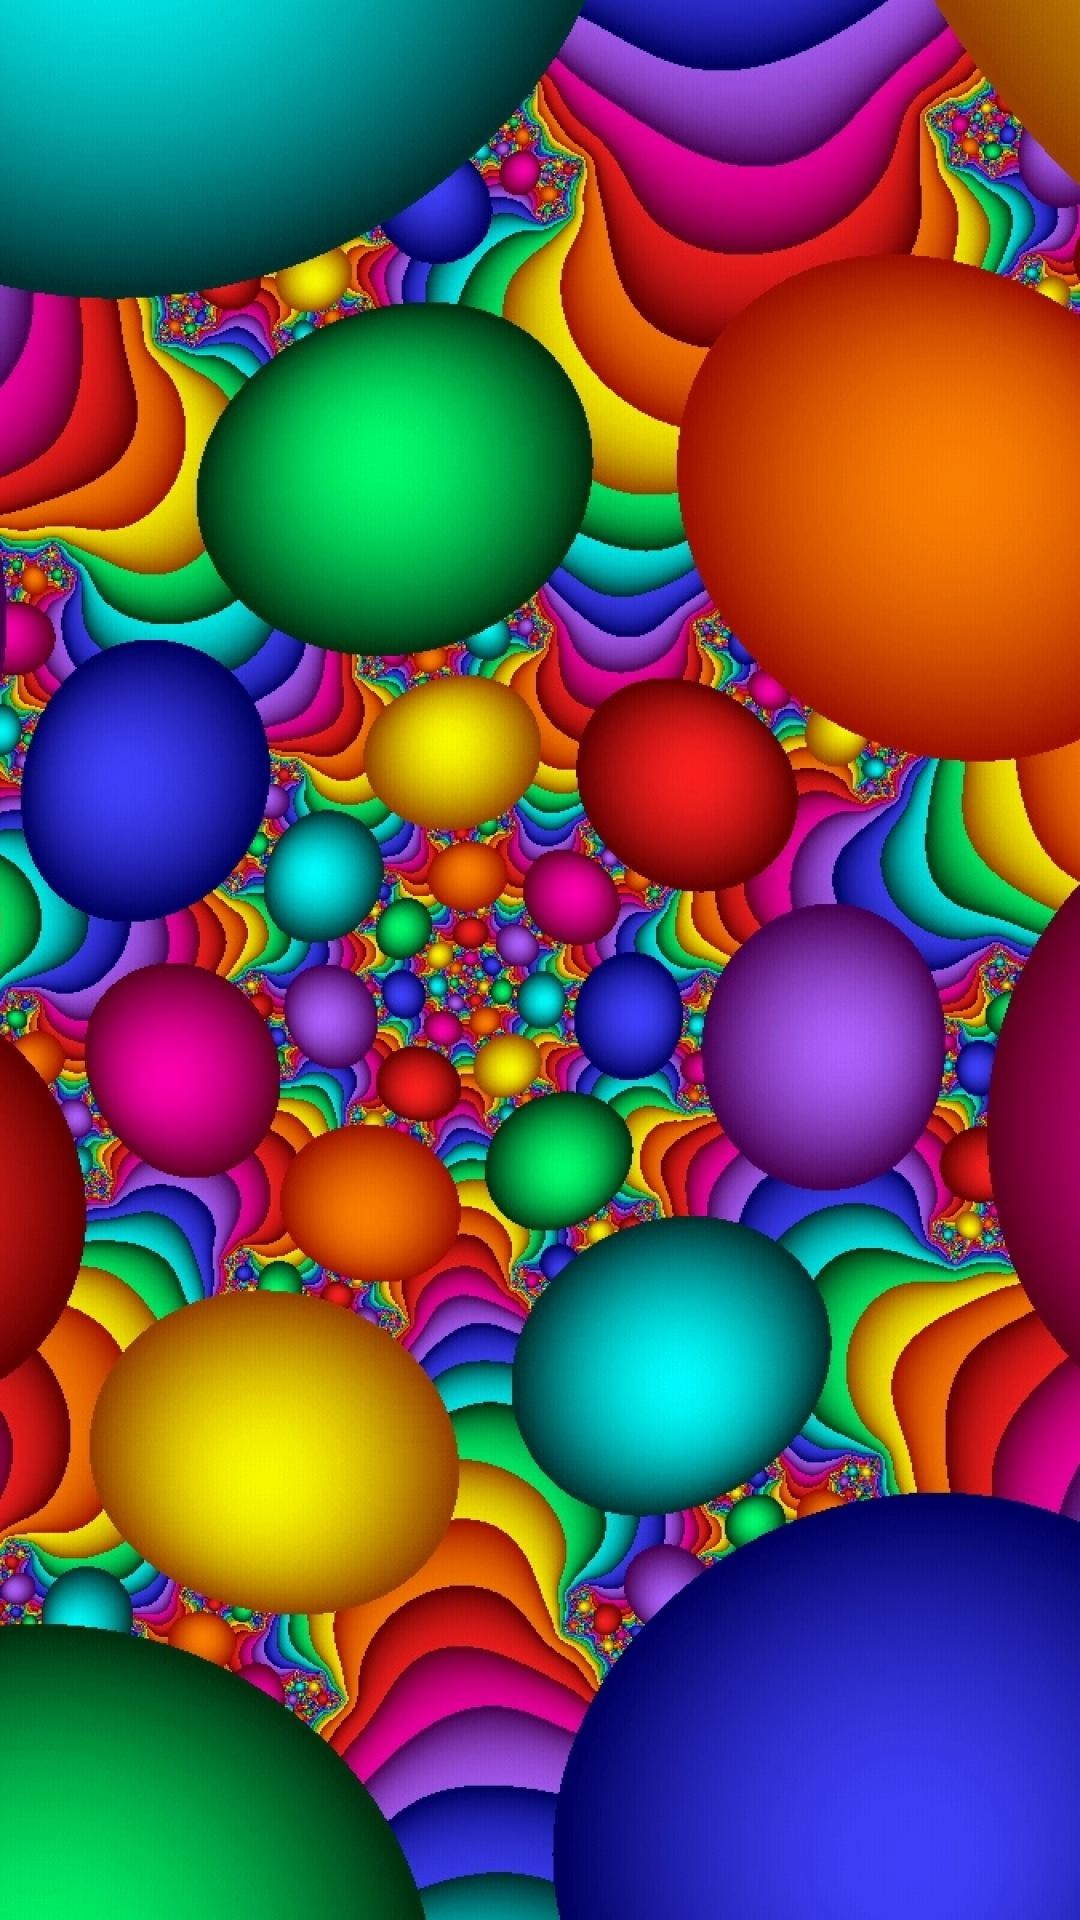 Res: 1080x1920, Download-1080×1920-Balloons-Colorful-Background-wallpaper-wp6404650